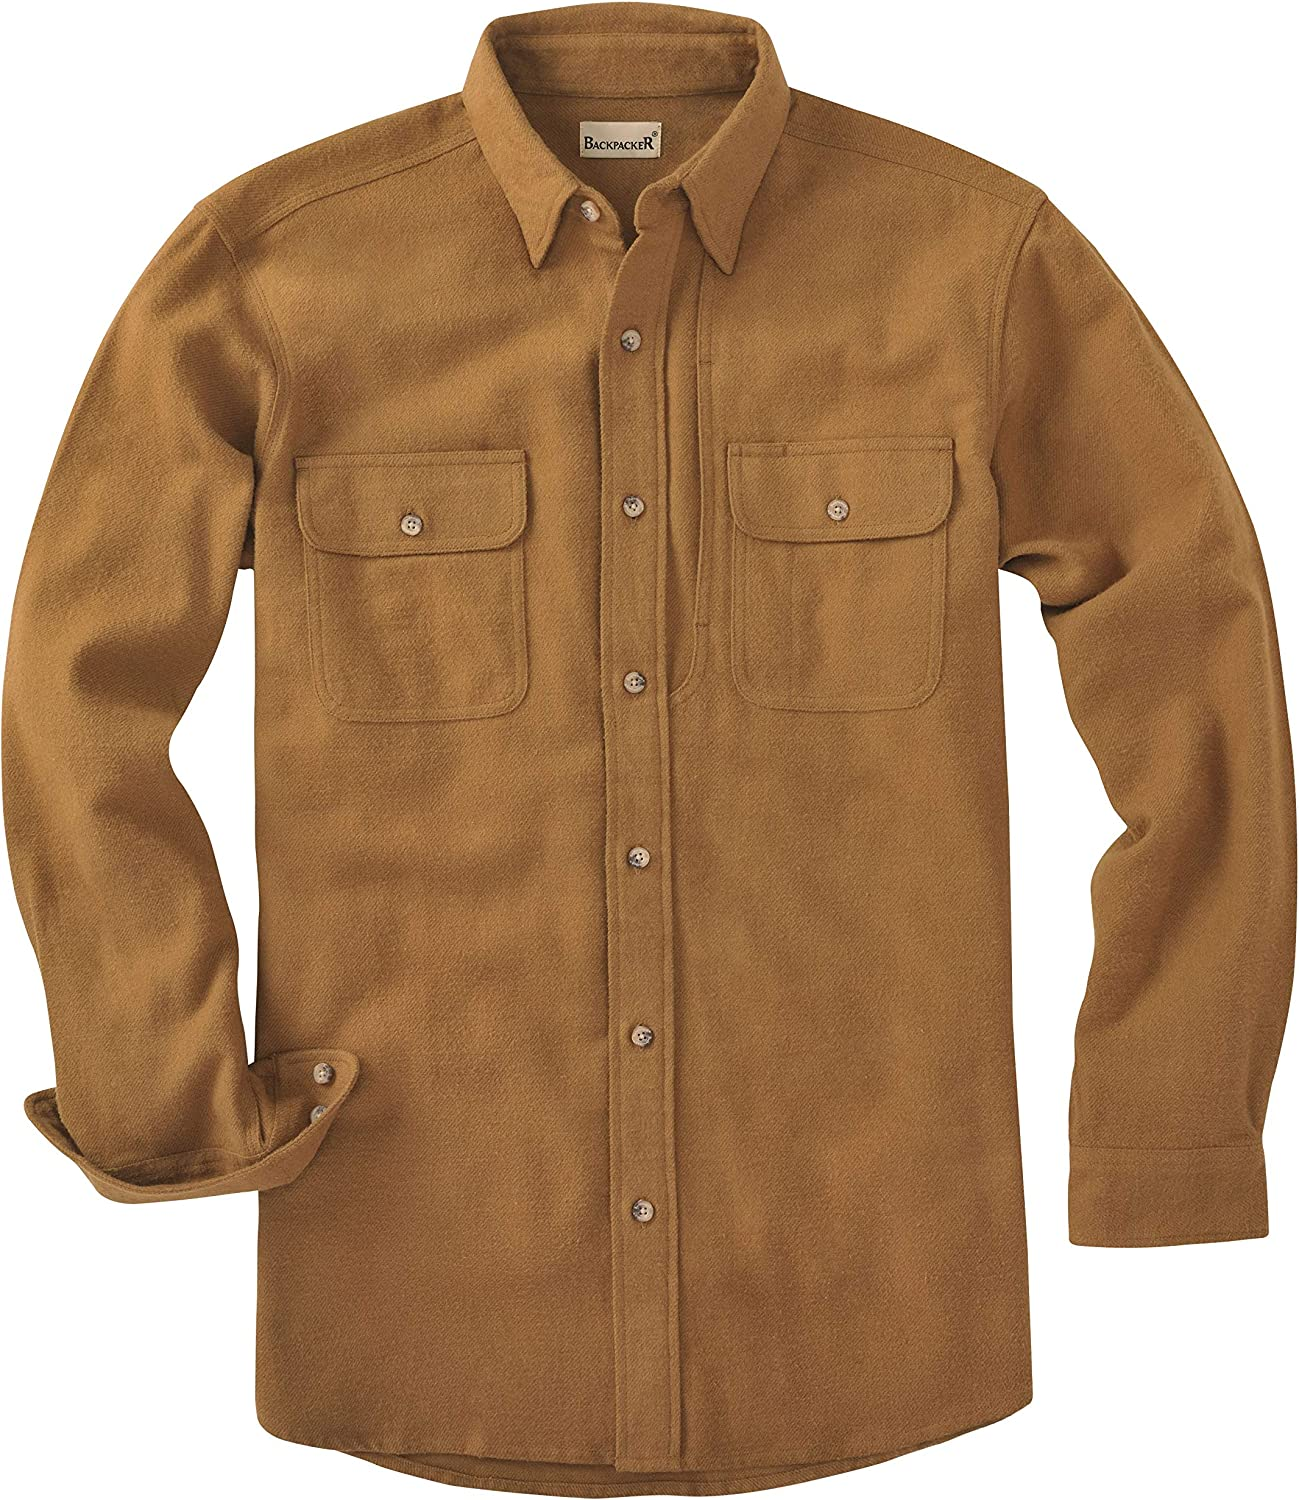 Backpacker Max 49% OFF Men's Heritage Chamois Brown OFFicial site Small Size